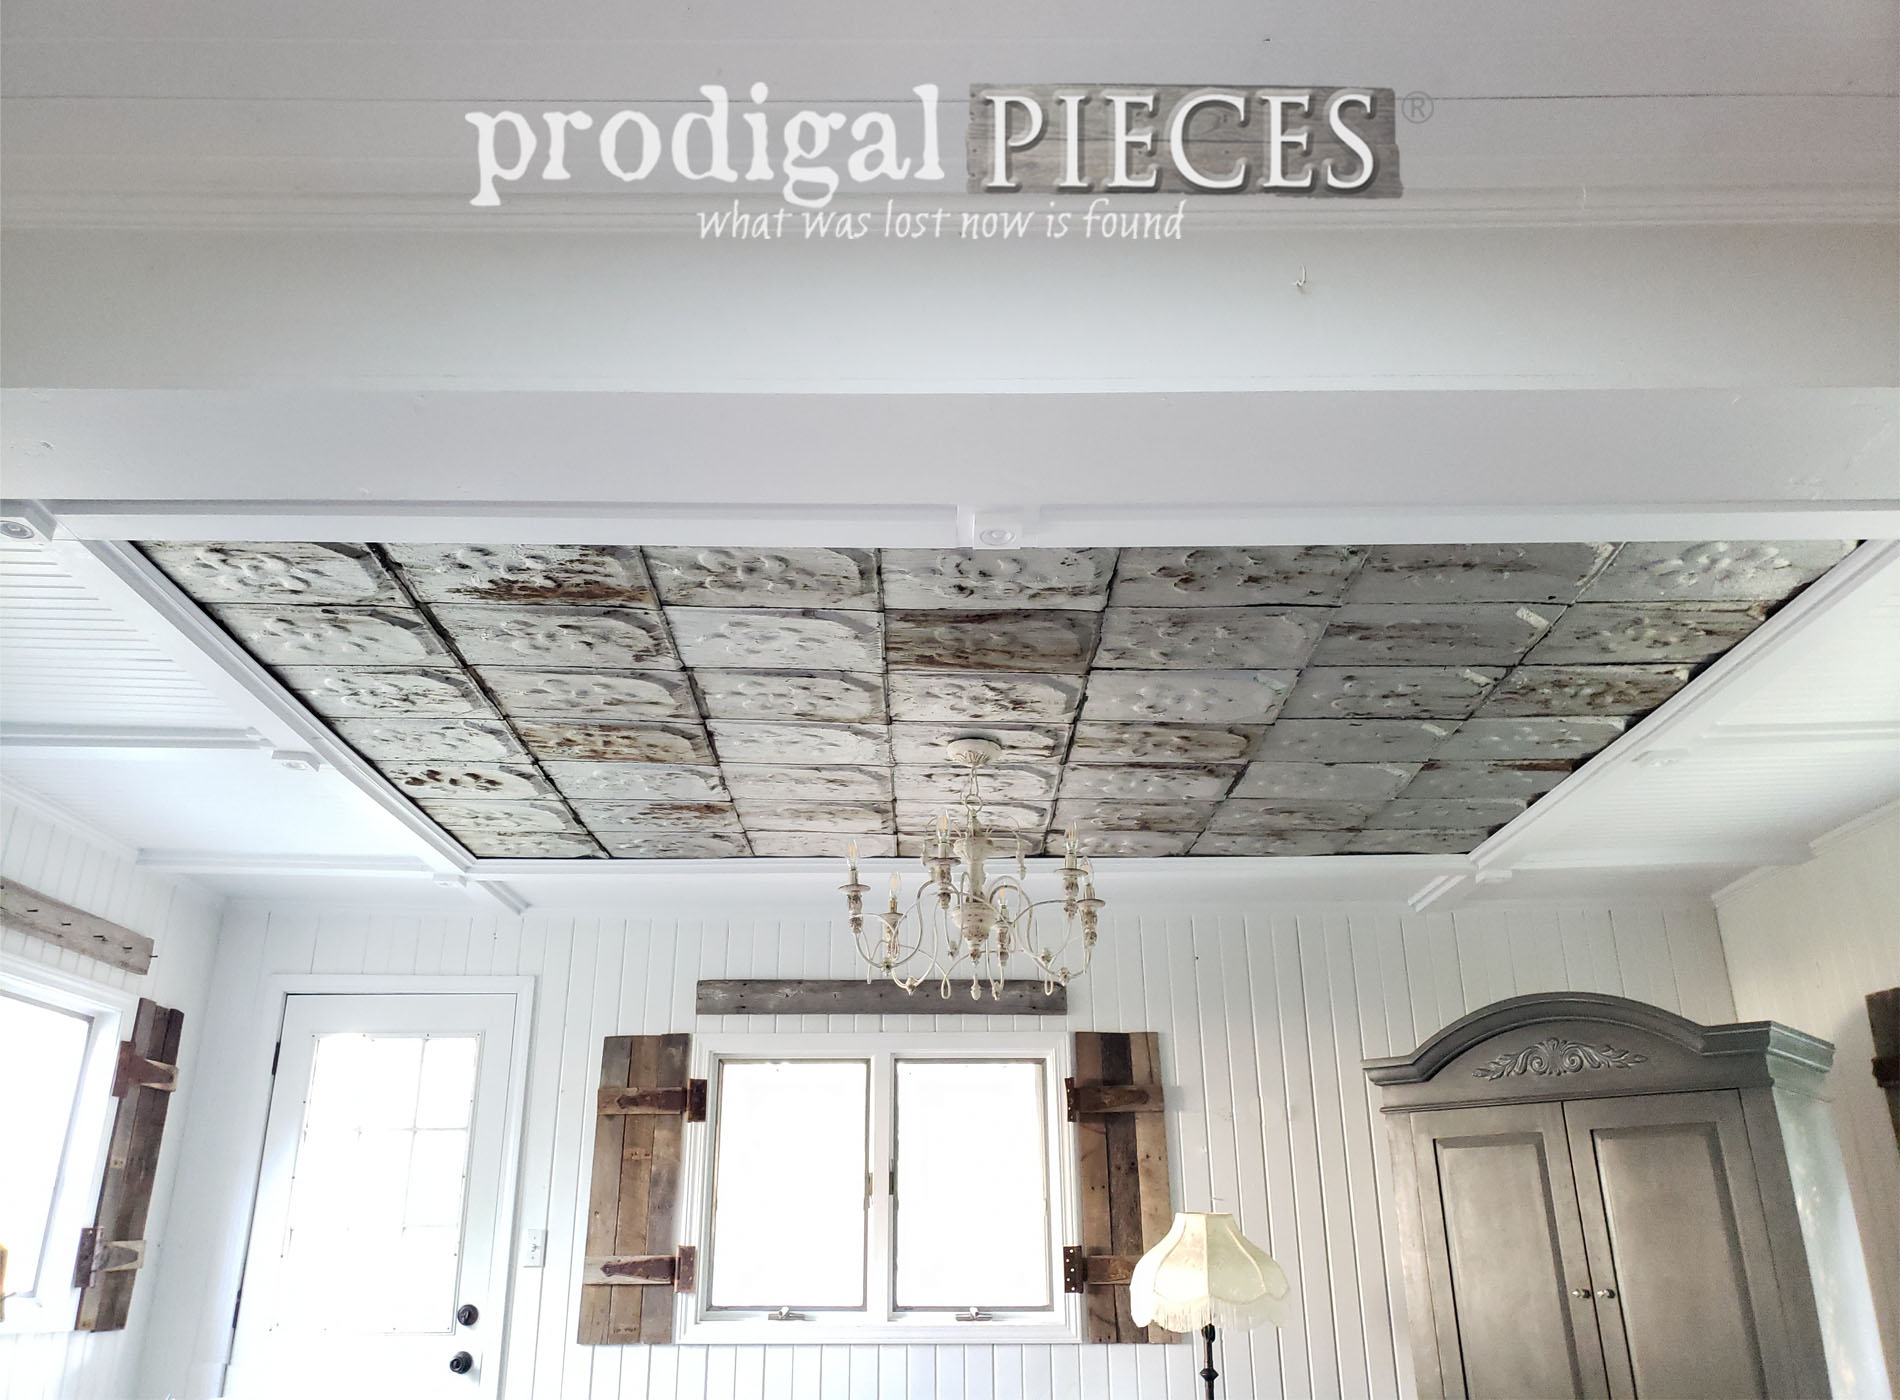 diy coffered ceiling with antique barn roof shingles - prodigal pieces